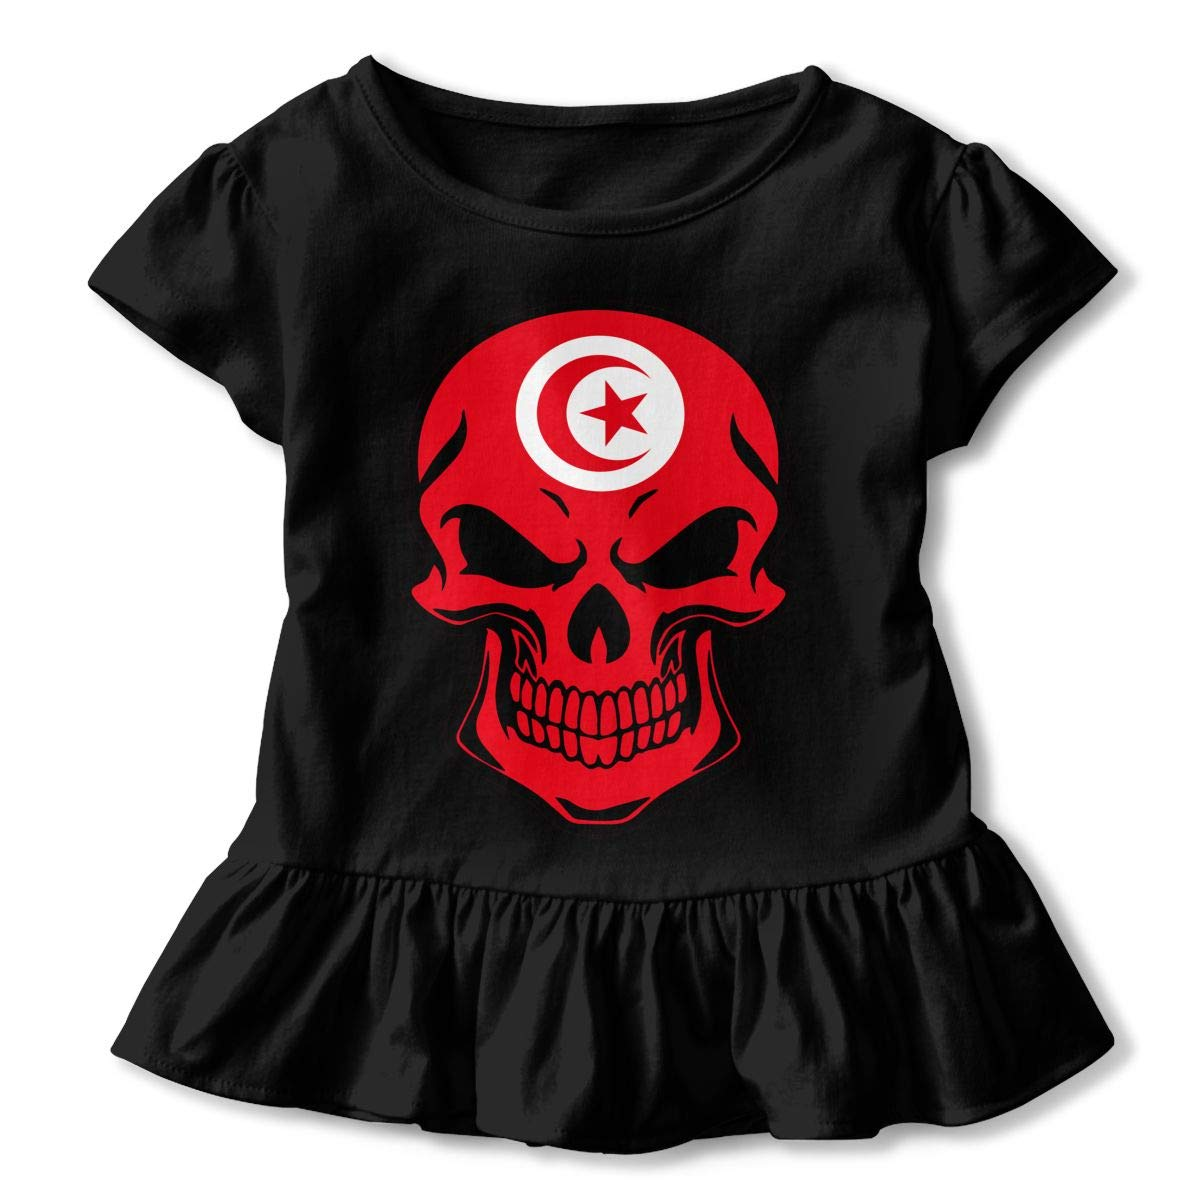 HYBDX9T Little Girls Tunisia Flag Skull Funny Short Sleeve Cotton T Shirts Basic Tops Tee Clothes